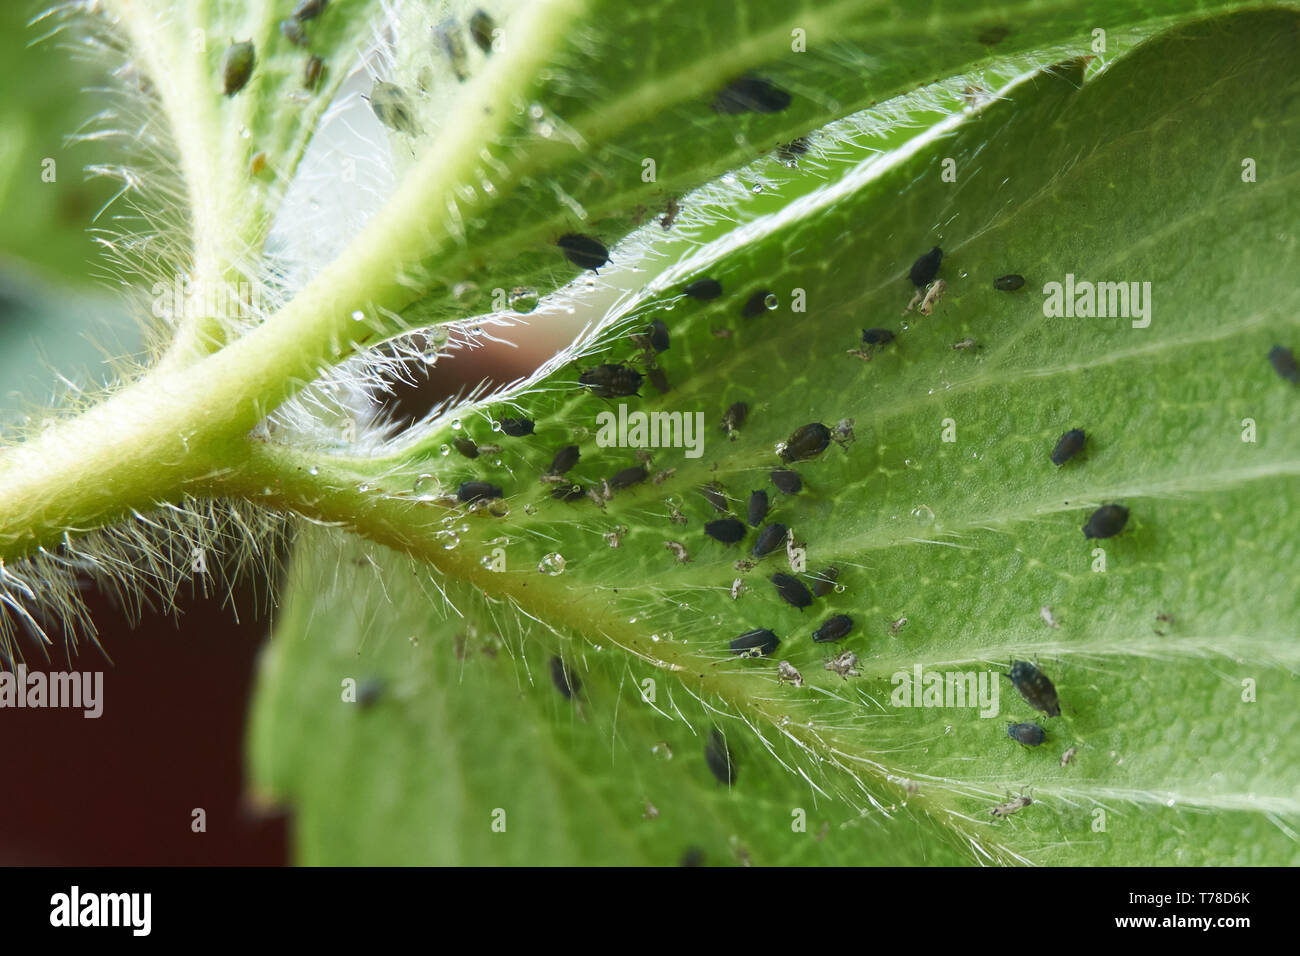 black-aphids-infest-the-underside-of-strawberry-plant-fragaria-ananassa-leaves-T78D6K.jpg